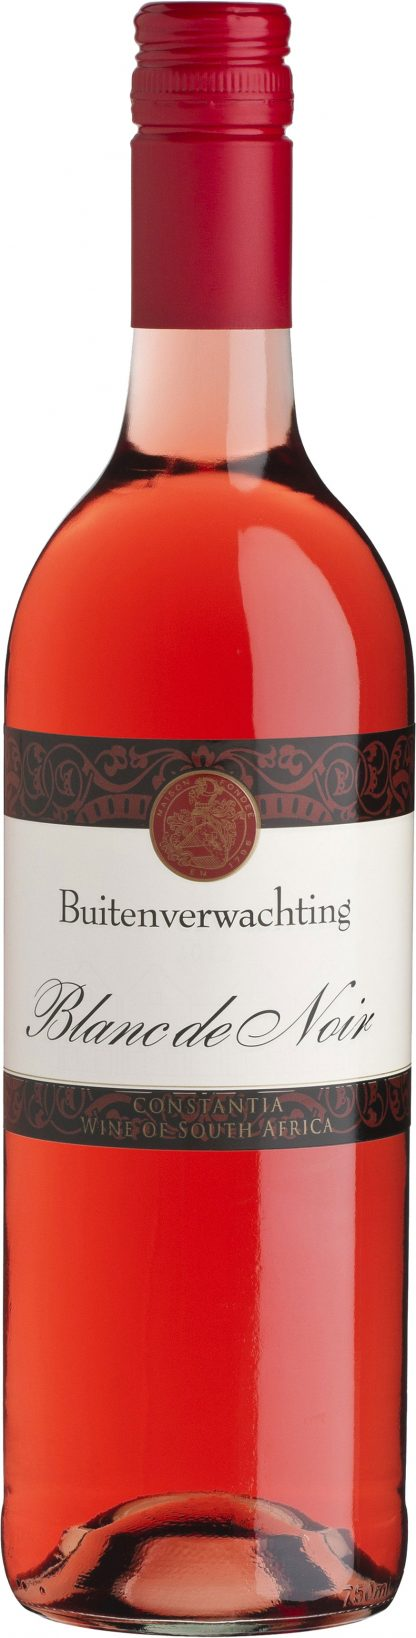 Buitenverwachting - Blanc De Noir Rose 2017 6x 75cl Bottles